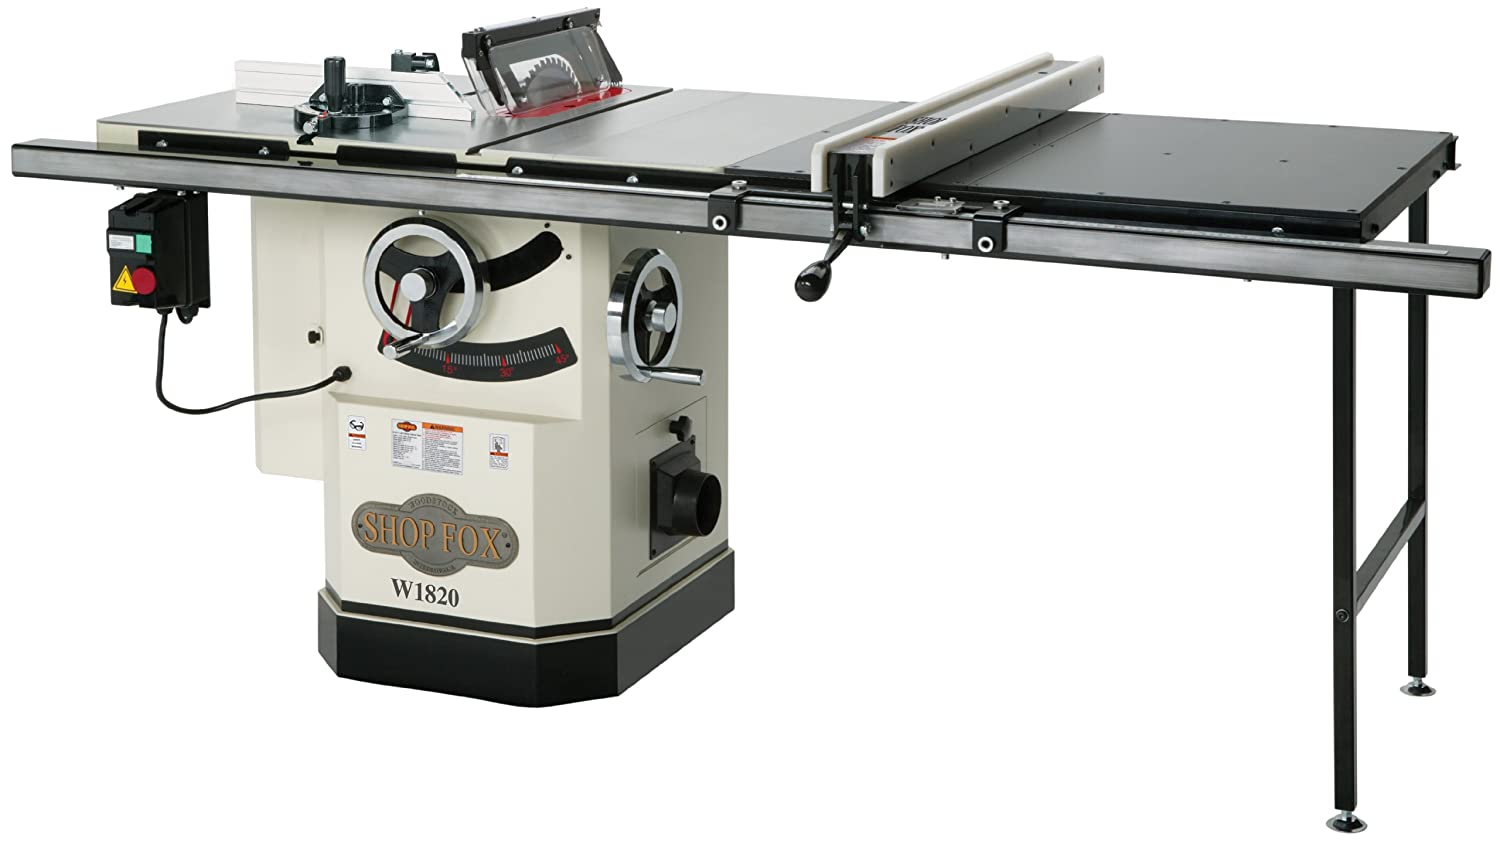 Table saw for 10 cast iron table saw r4512